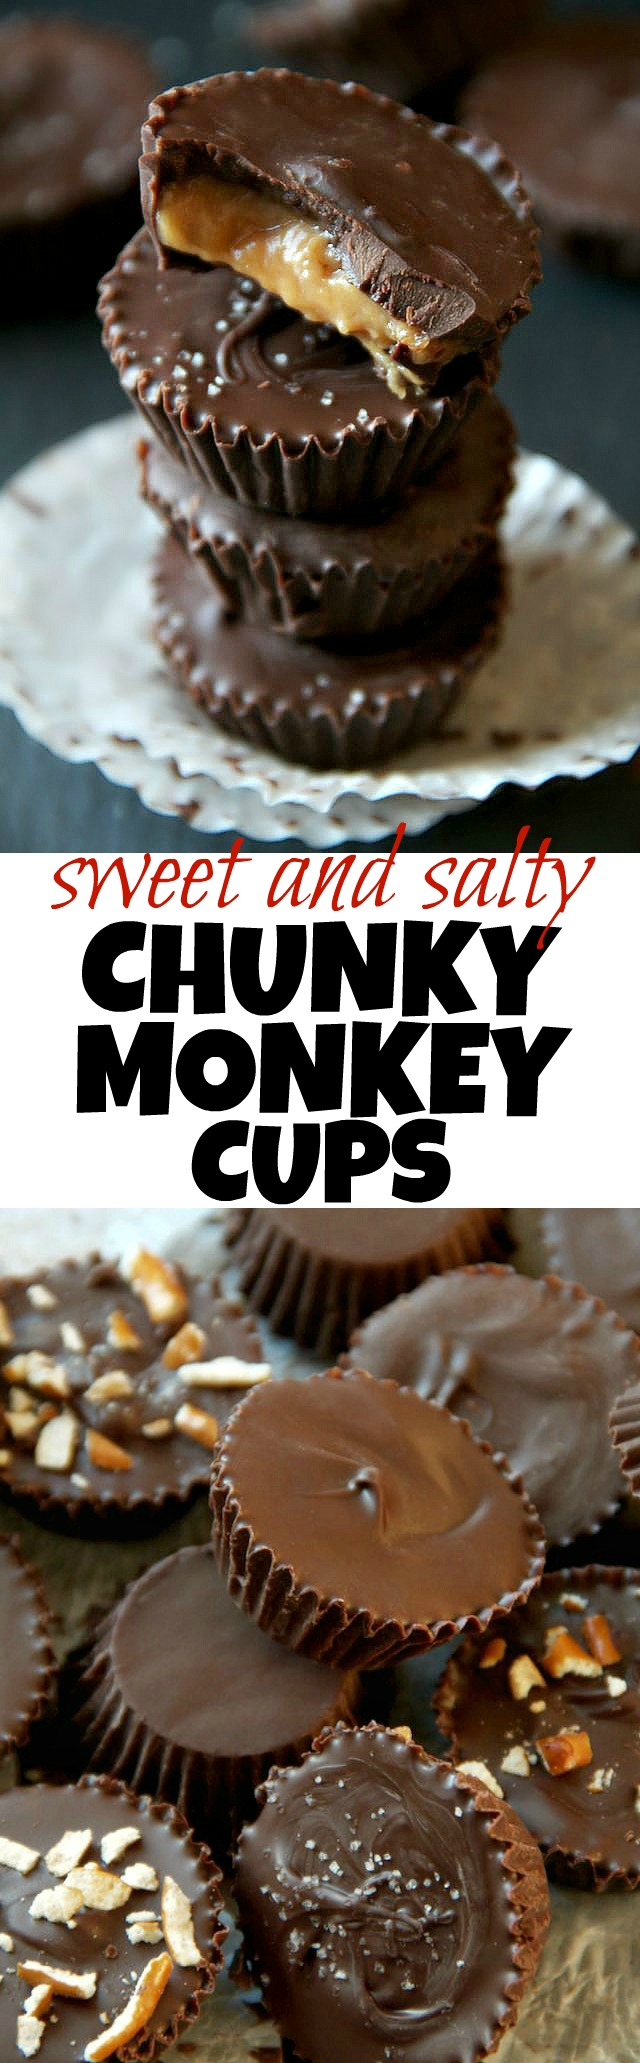 You'll go bananas for these sweet and salty Chunky Monkey Cups! Just 5 simple ingredients for one ridiculously delicious chocolate treat!   runningwithspoons.com #vegan #healthy #dessert